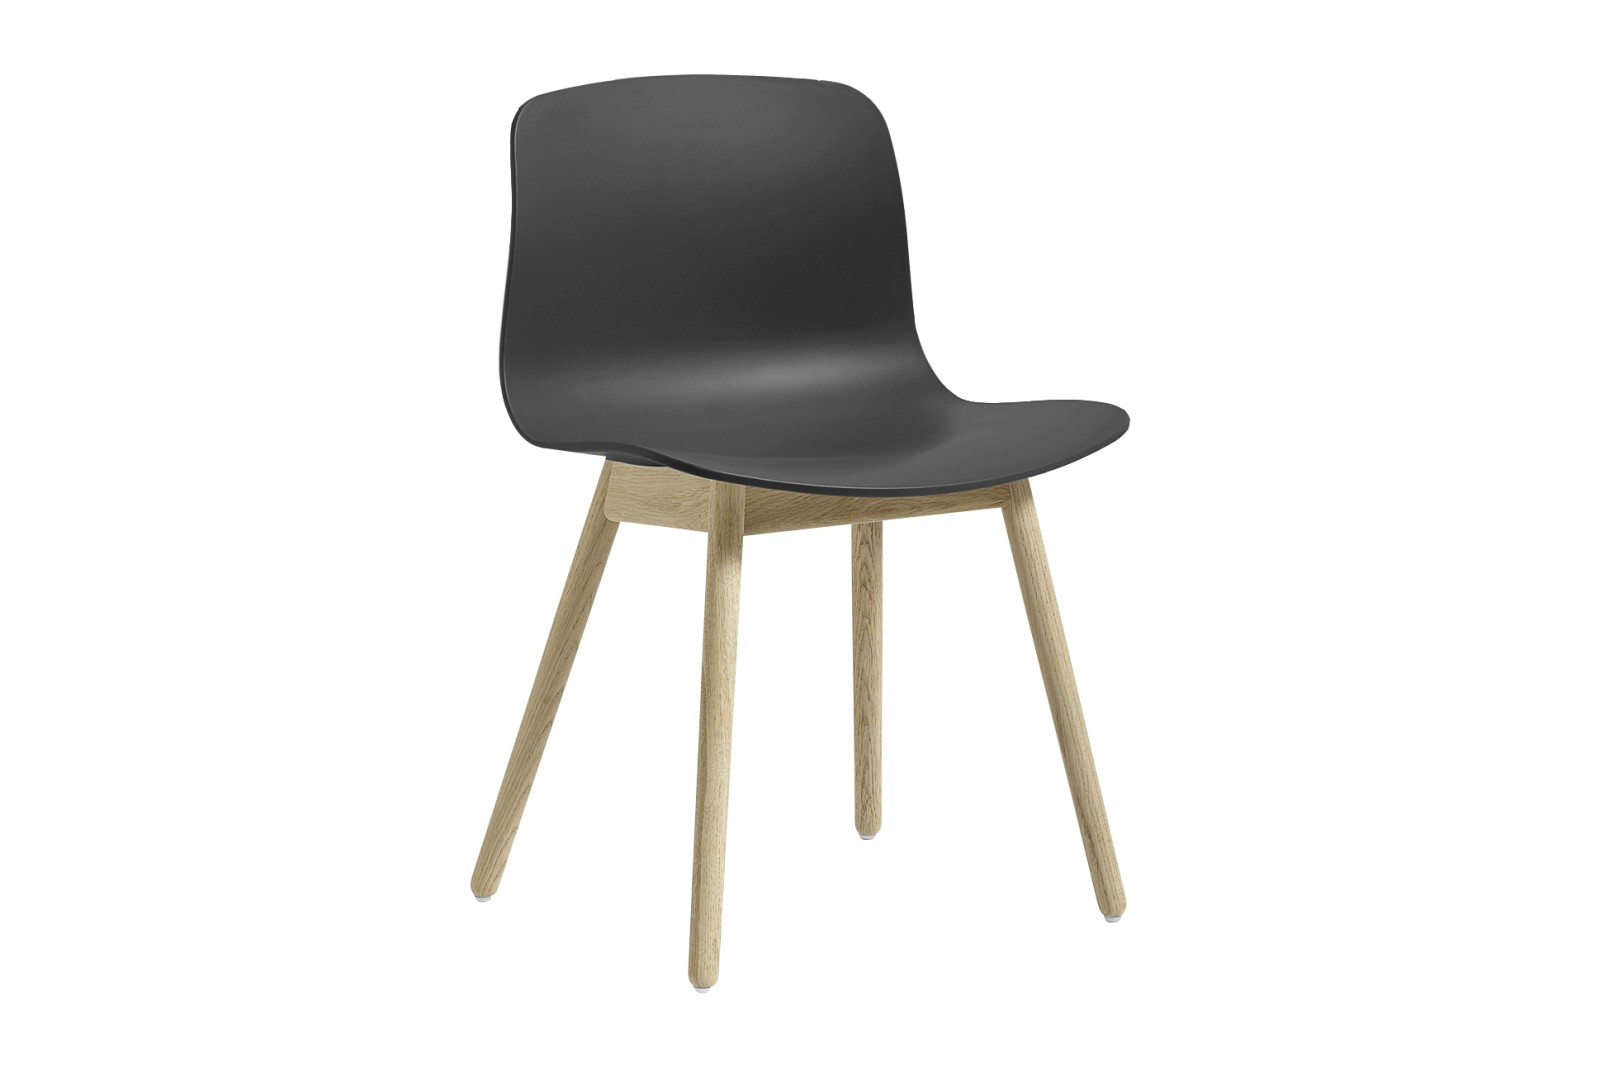 About A Chair AAC12 Soft Black Seat and Soap Treated Oak Base